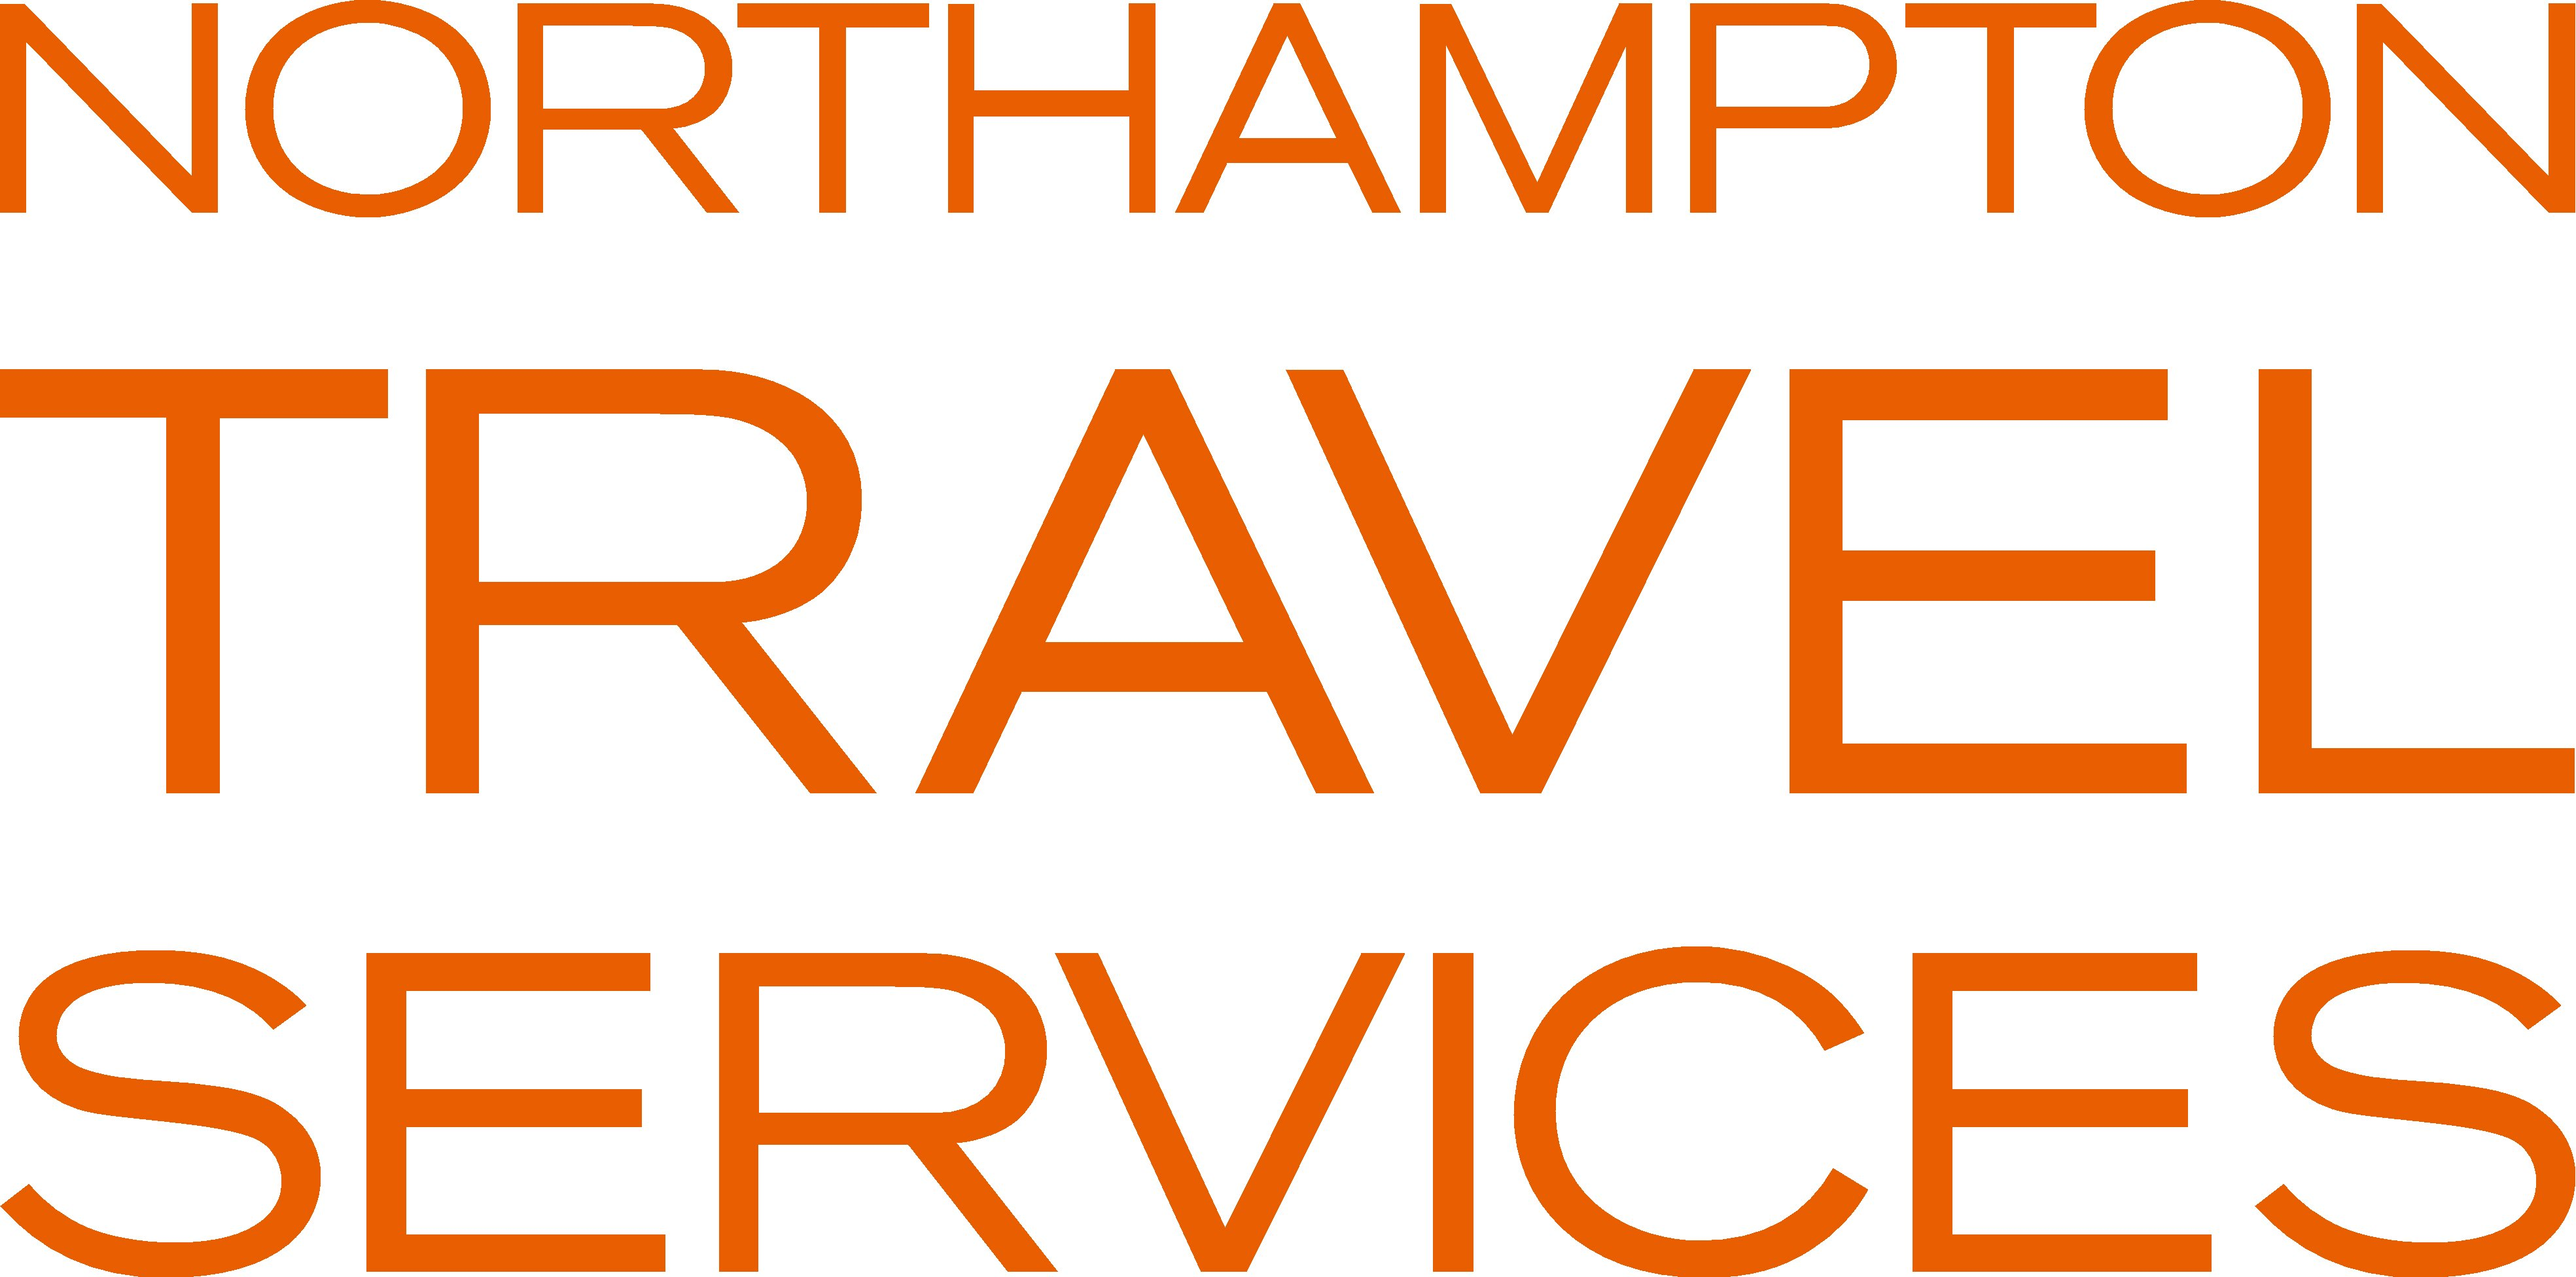 Northampton Travel Services Ltd